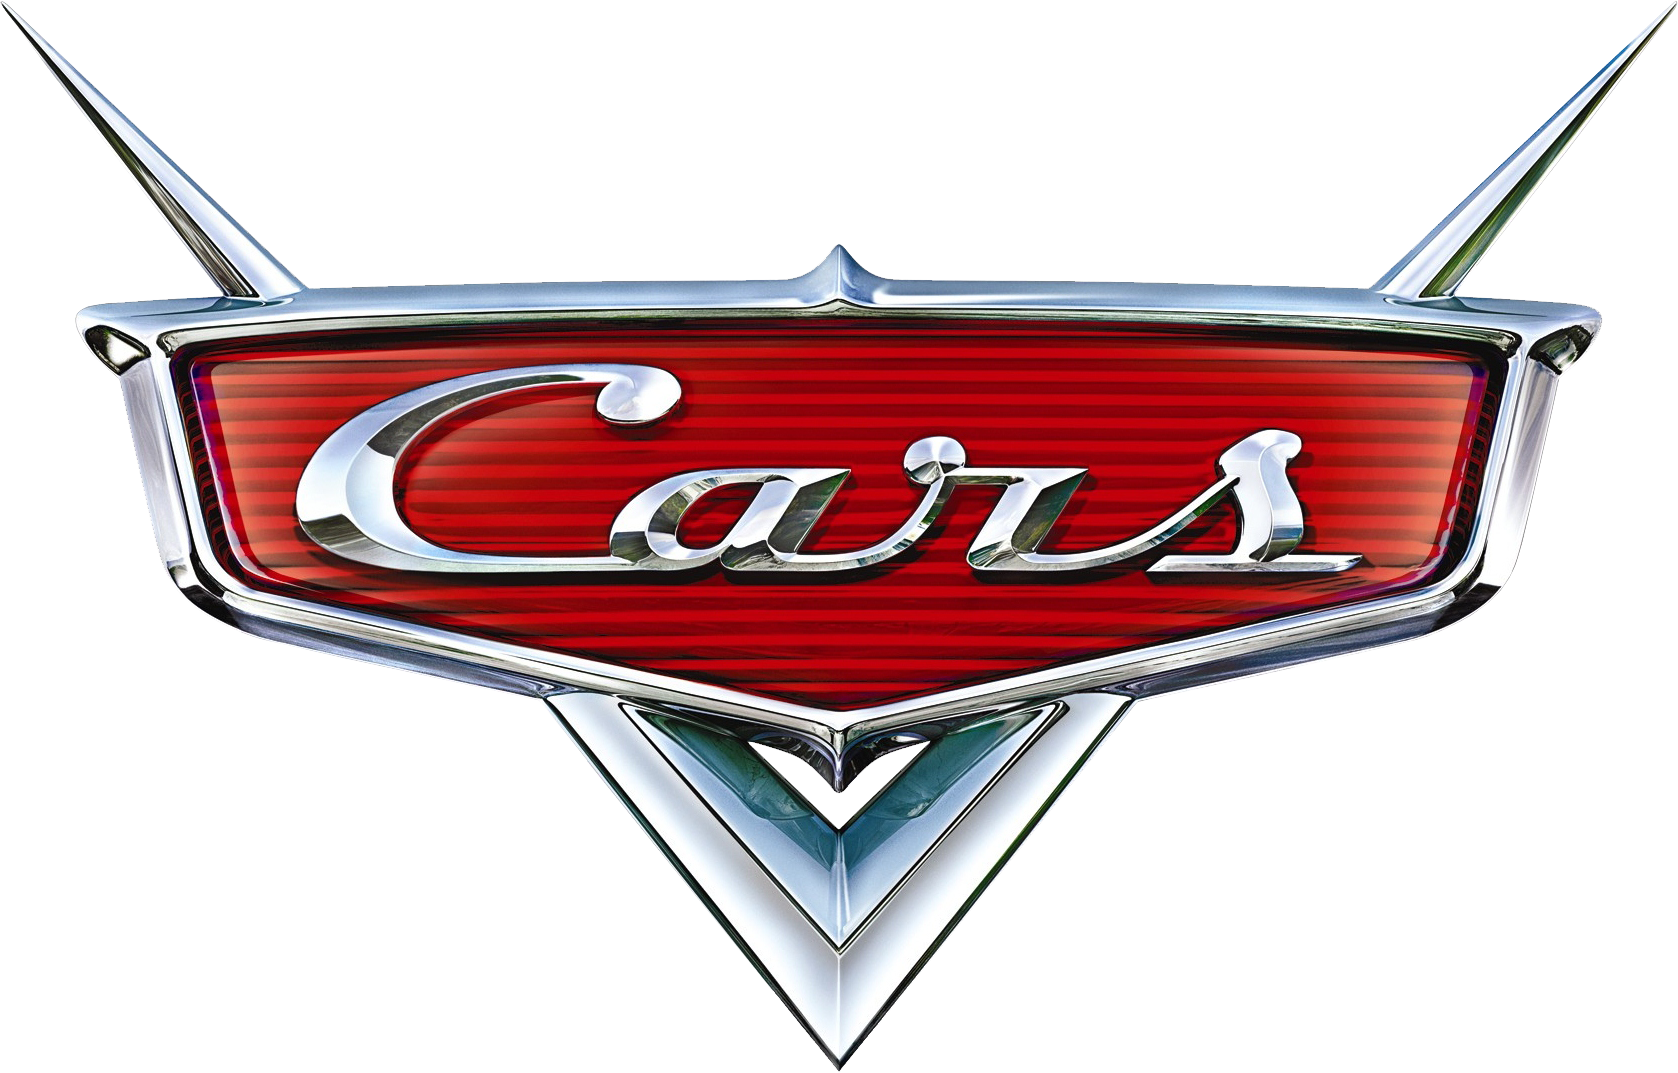 Disney Cars Png Hd Free Transparent Disney Cars Hdpng Images Pluspng